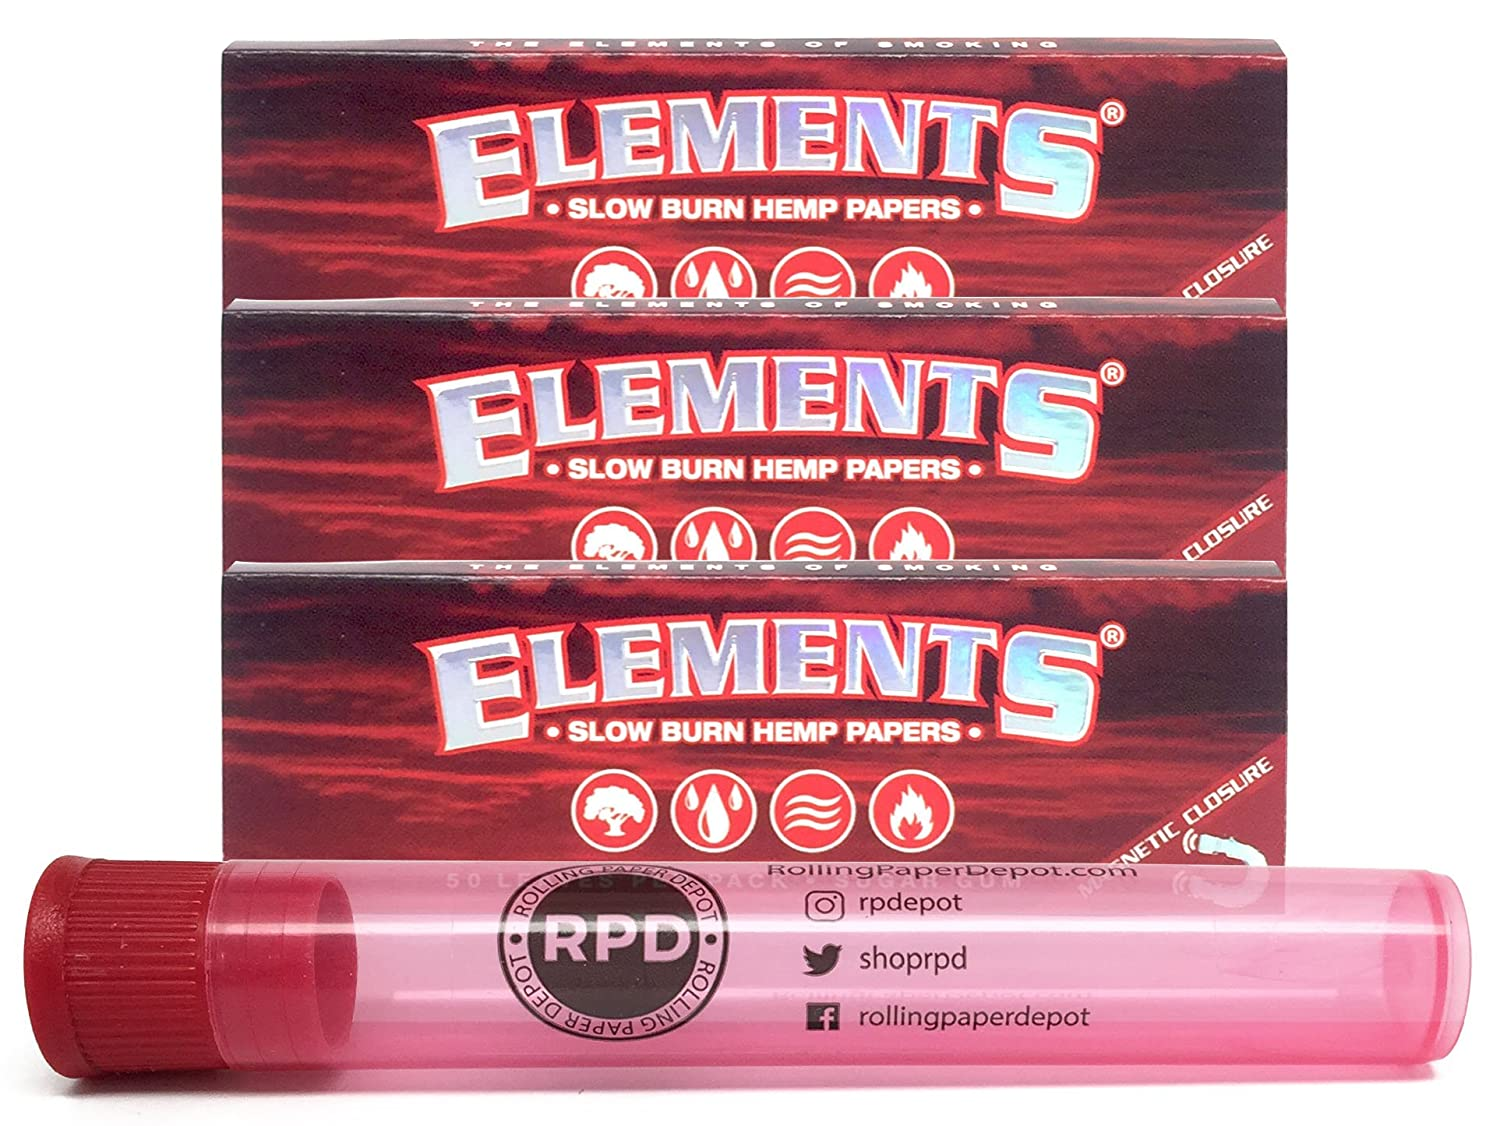 Elements Red 1 1/4 Slow Burn Hemp Papers (3 Packs) with Rolling Paper Depot  Doob Tube